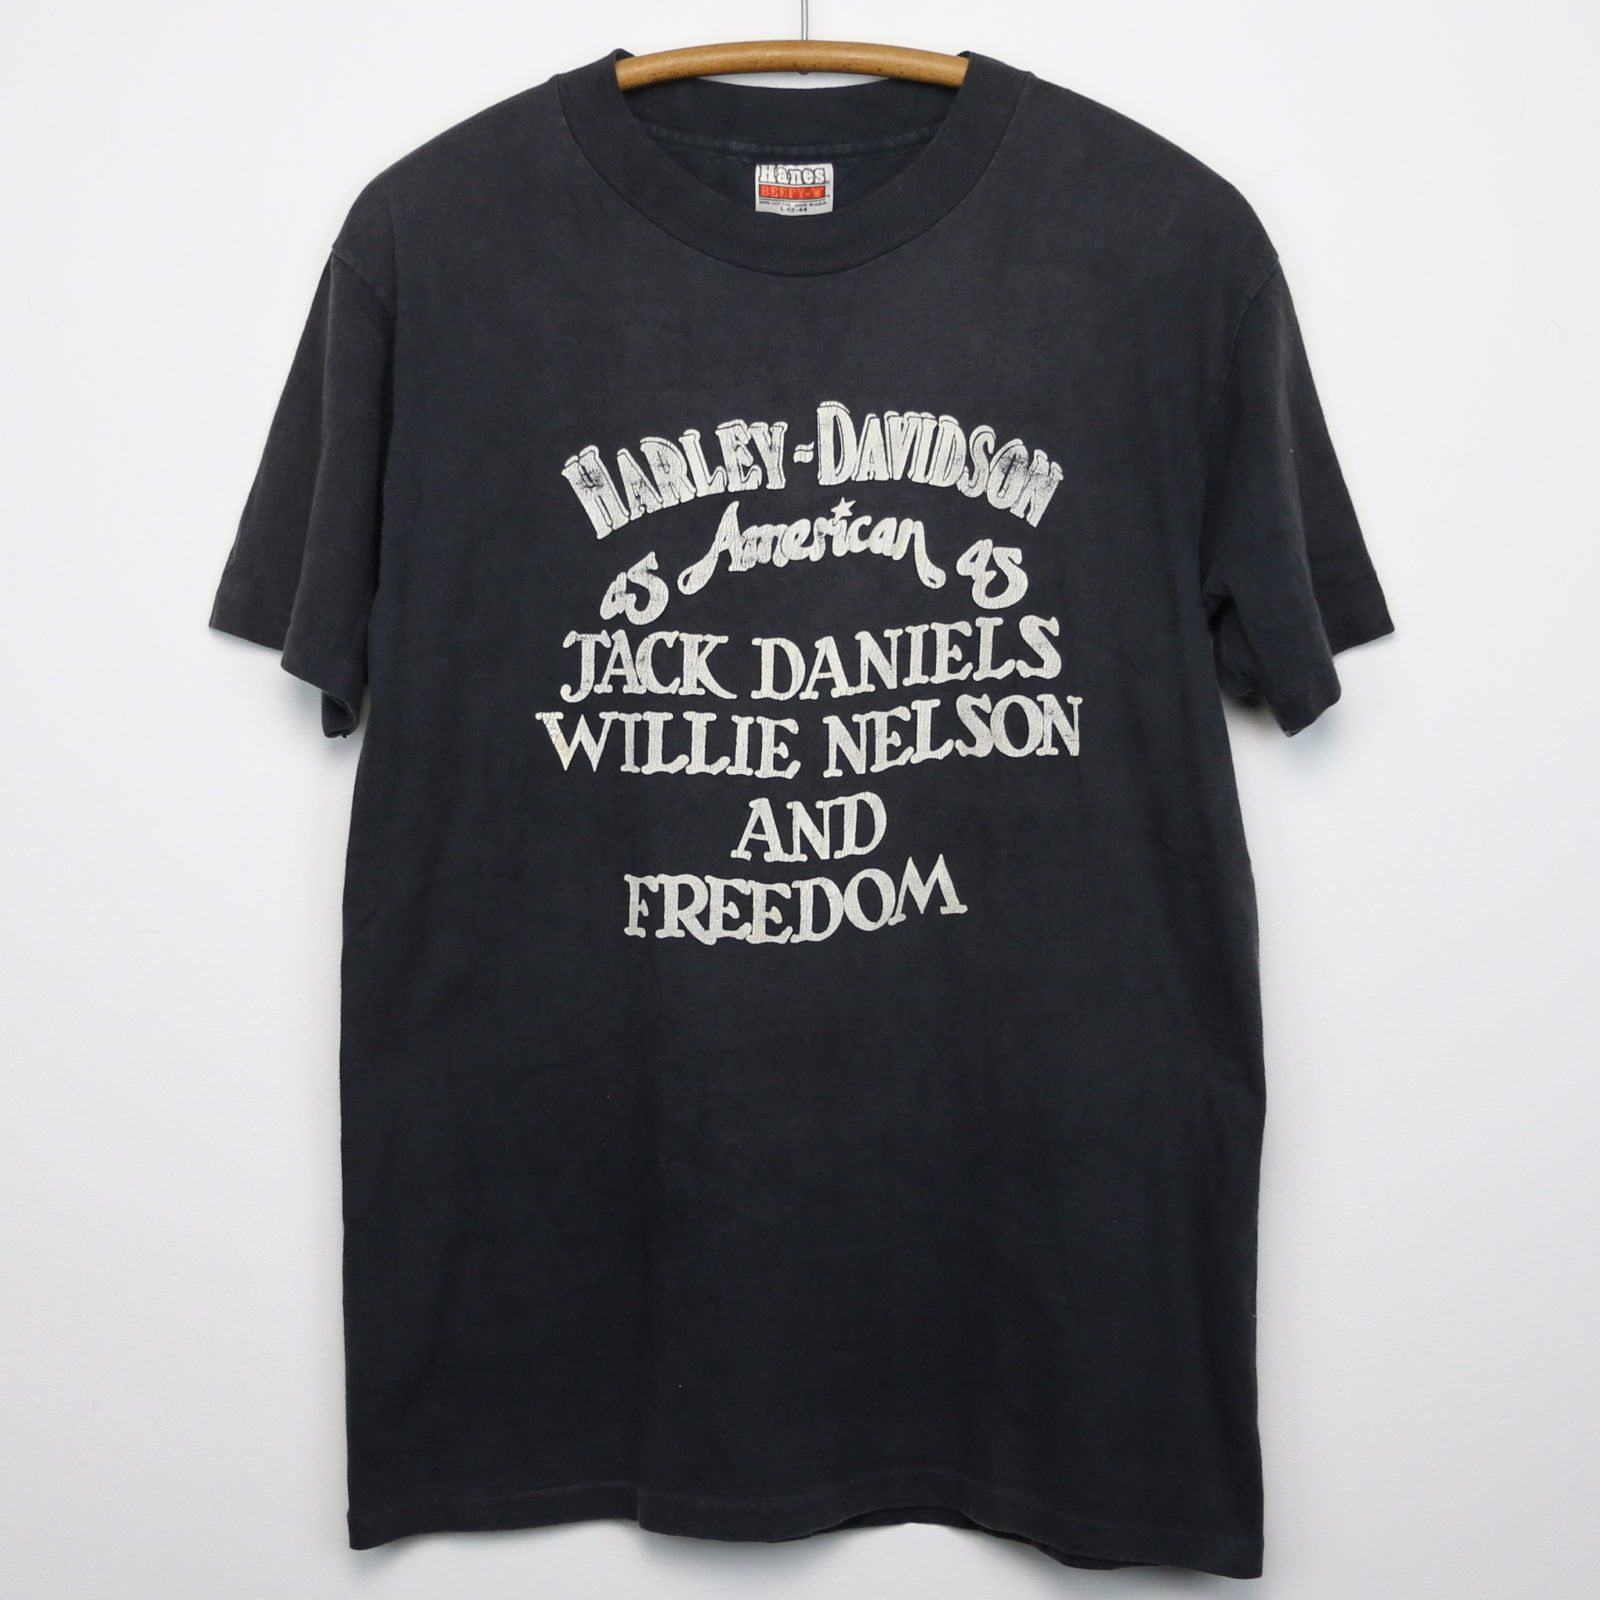 1980s Harley Davidson American As Jack Daniels   Willie Nelson Shirt ... 3bb732533c